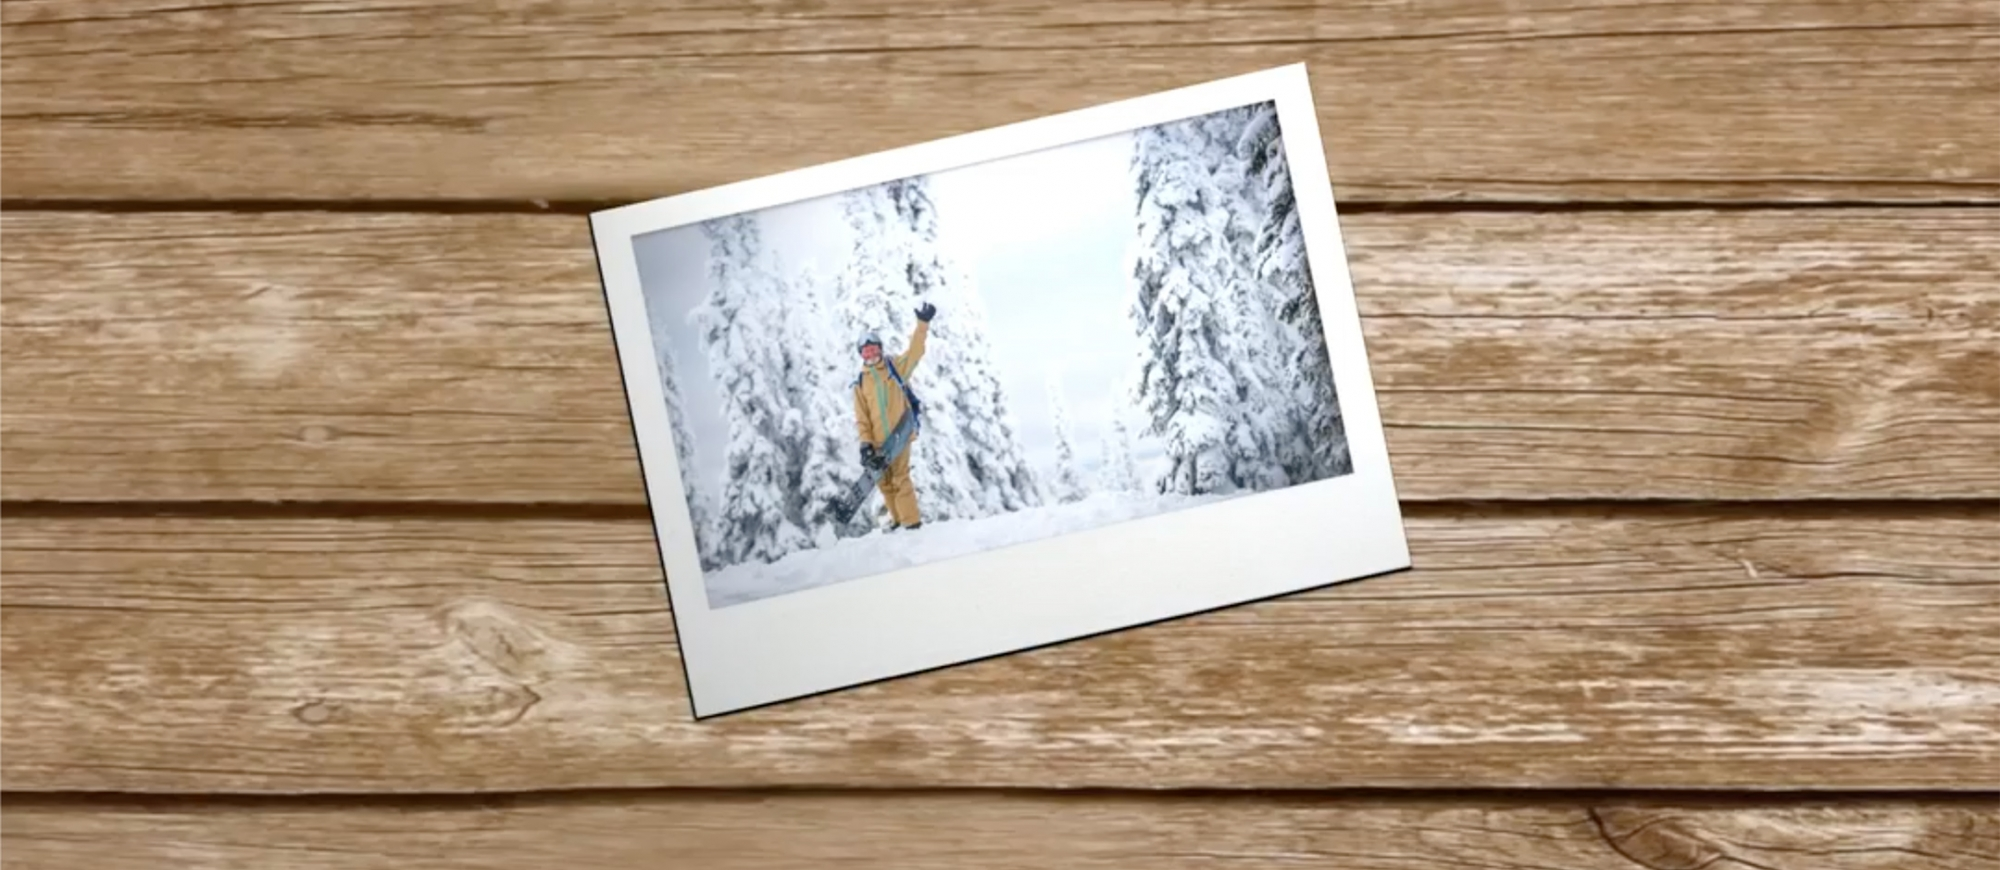 Photo lying on a wooden desk at an angle, of man on snowy day waving at camera